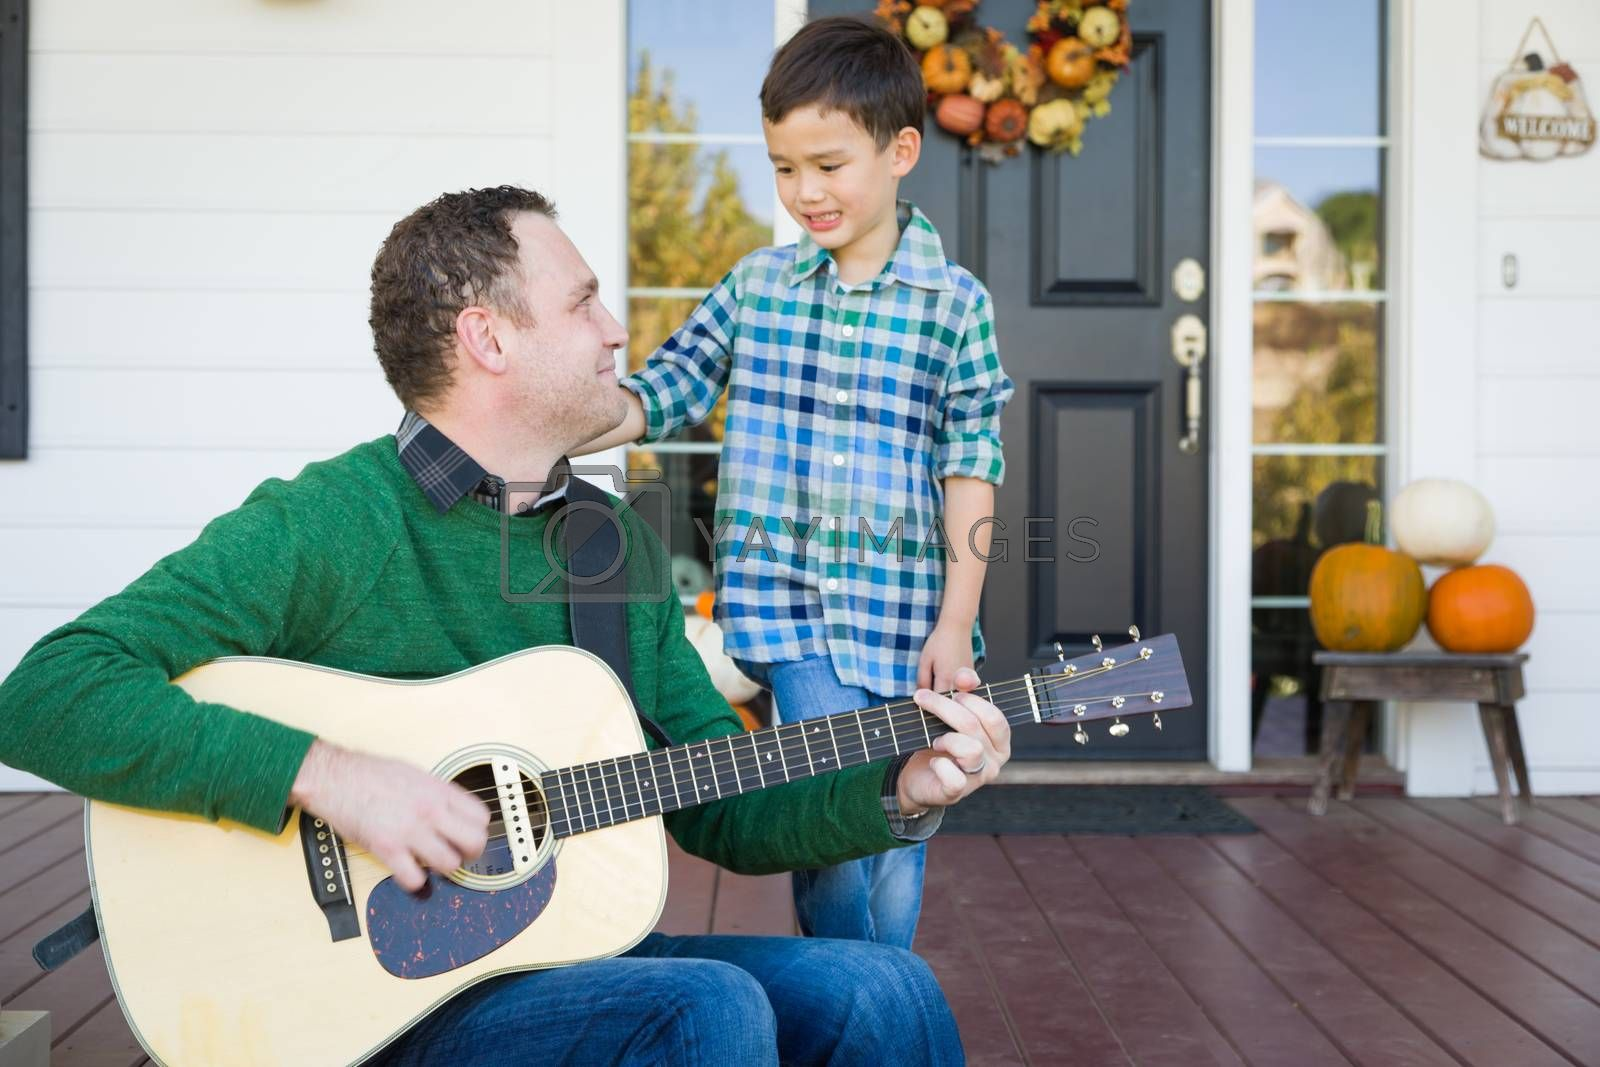 Young Mixed Race Chinese and Caucasian Son Singing Songs and Playing Guitar with Father by Feverpitched